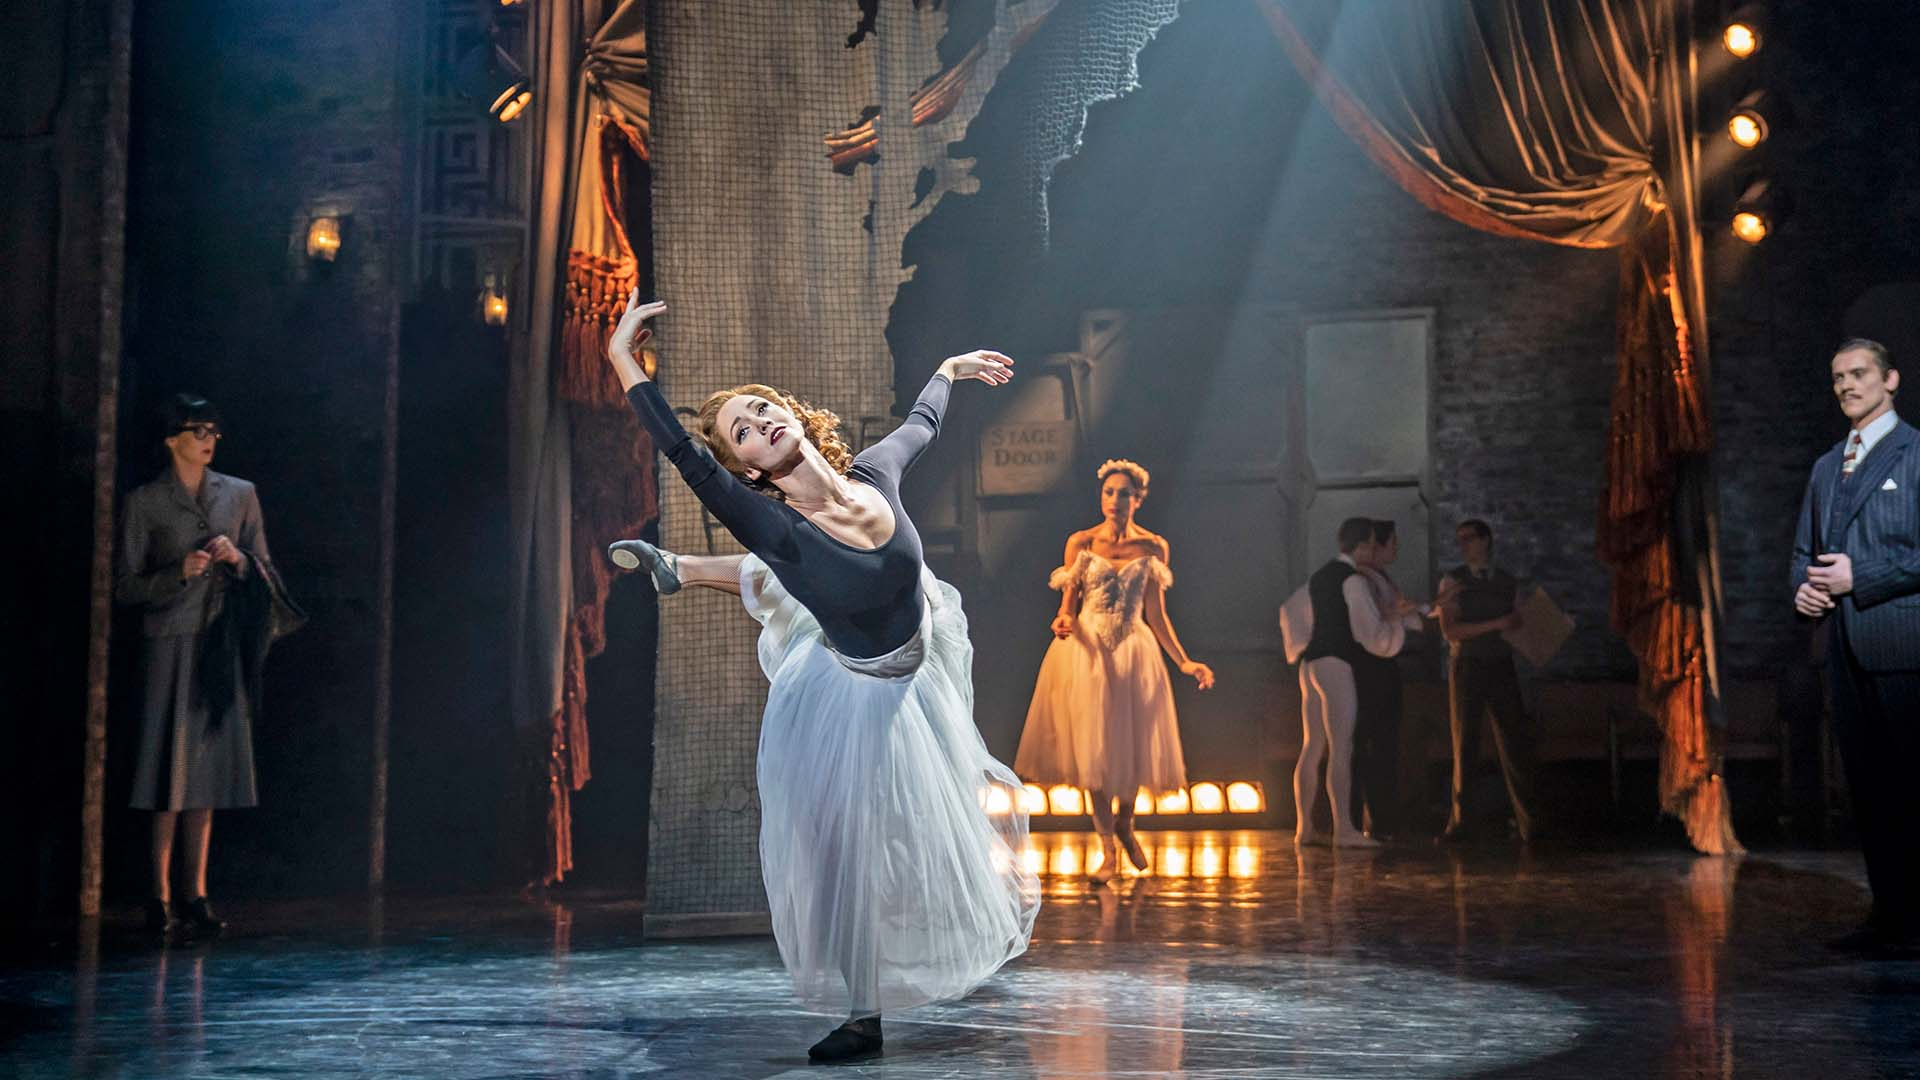 Victoria Page (Ashley Shaw) performing on stage in the ballet The Red Shoes